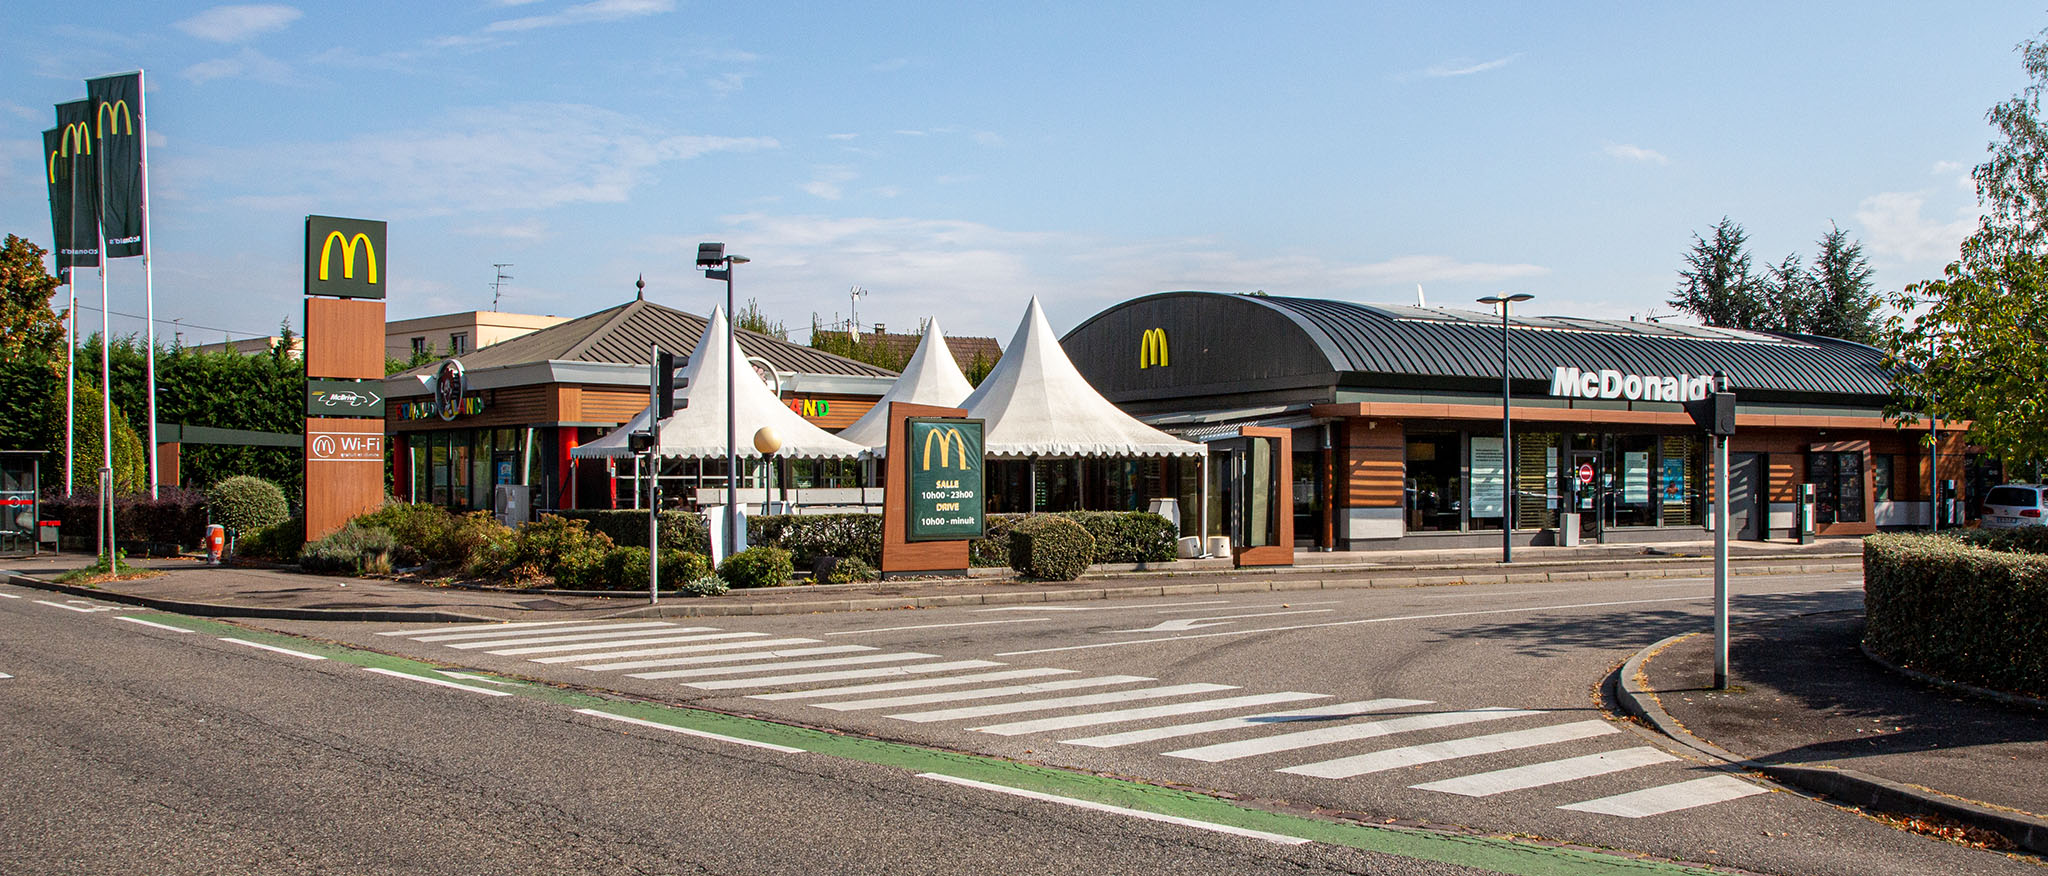 Das McDonald's-Restaurant in Colmar